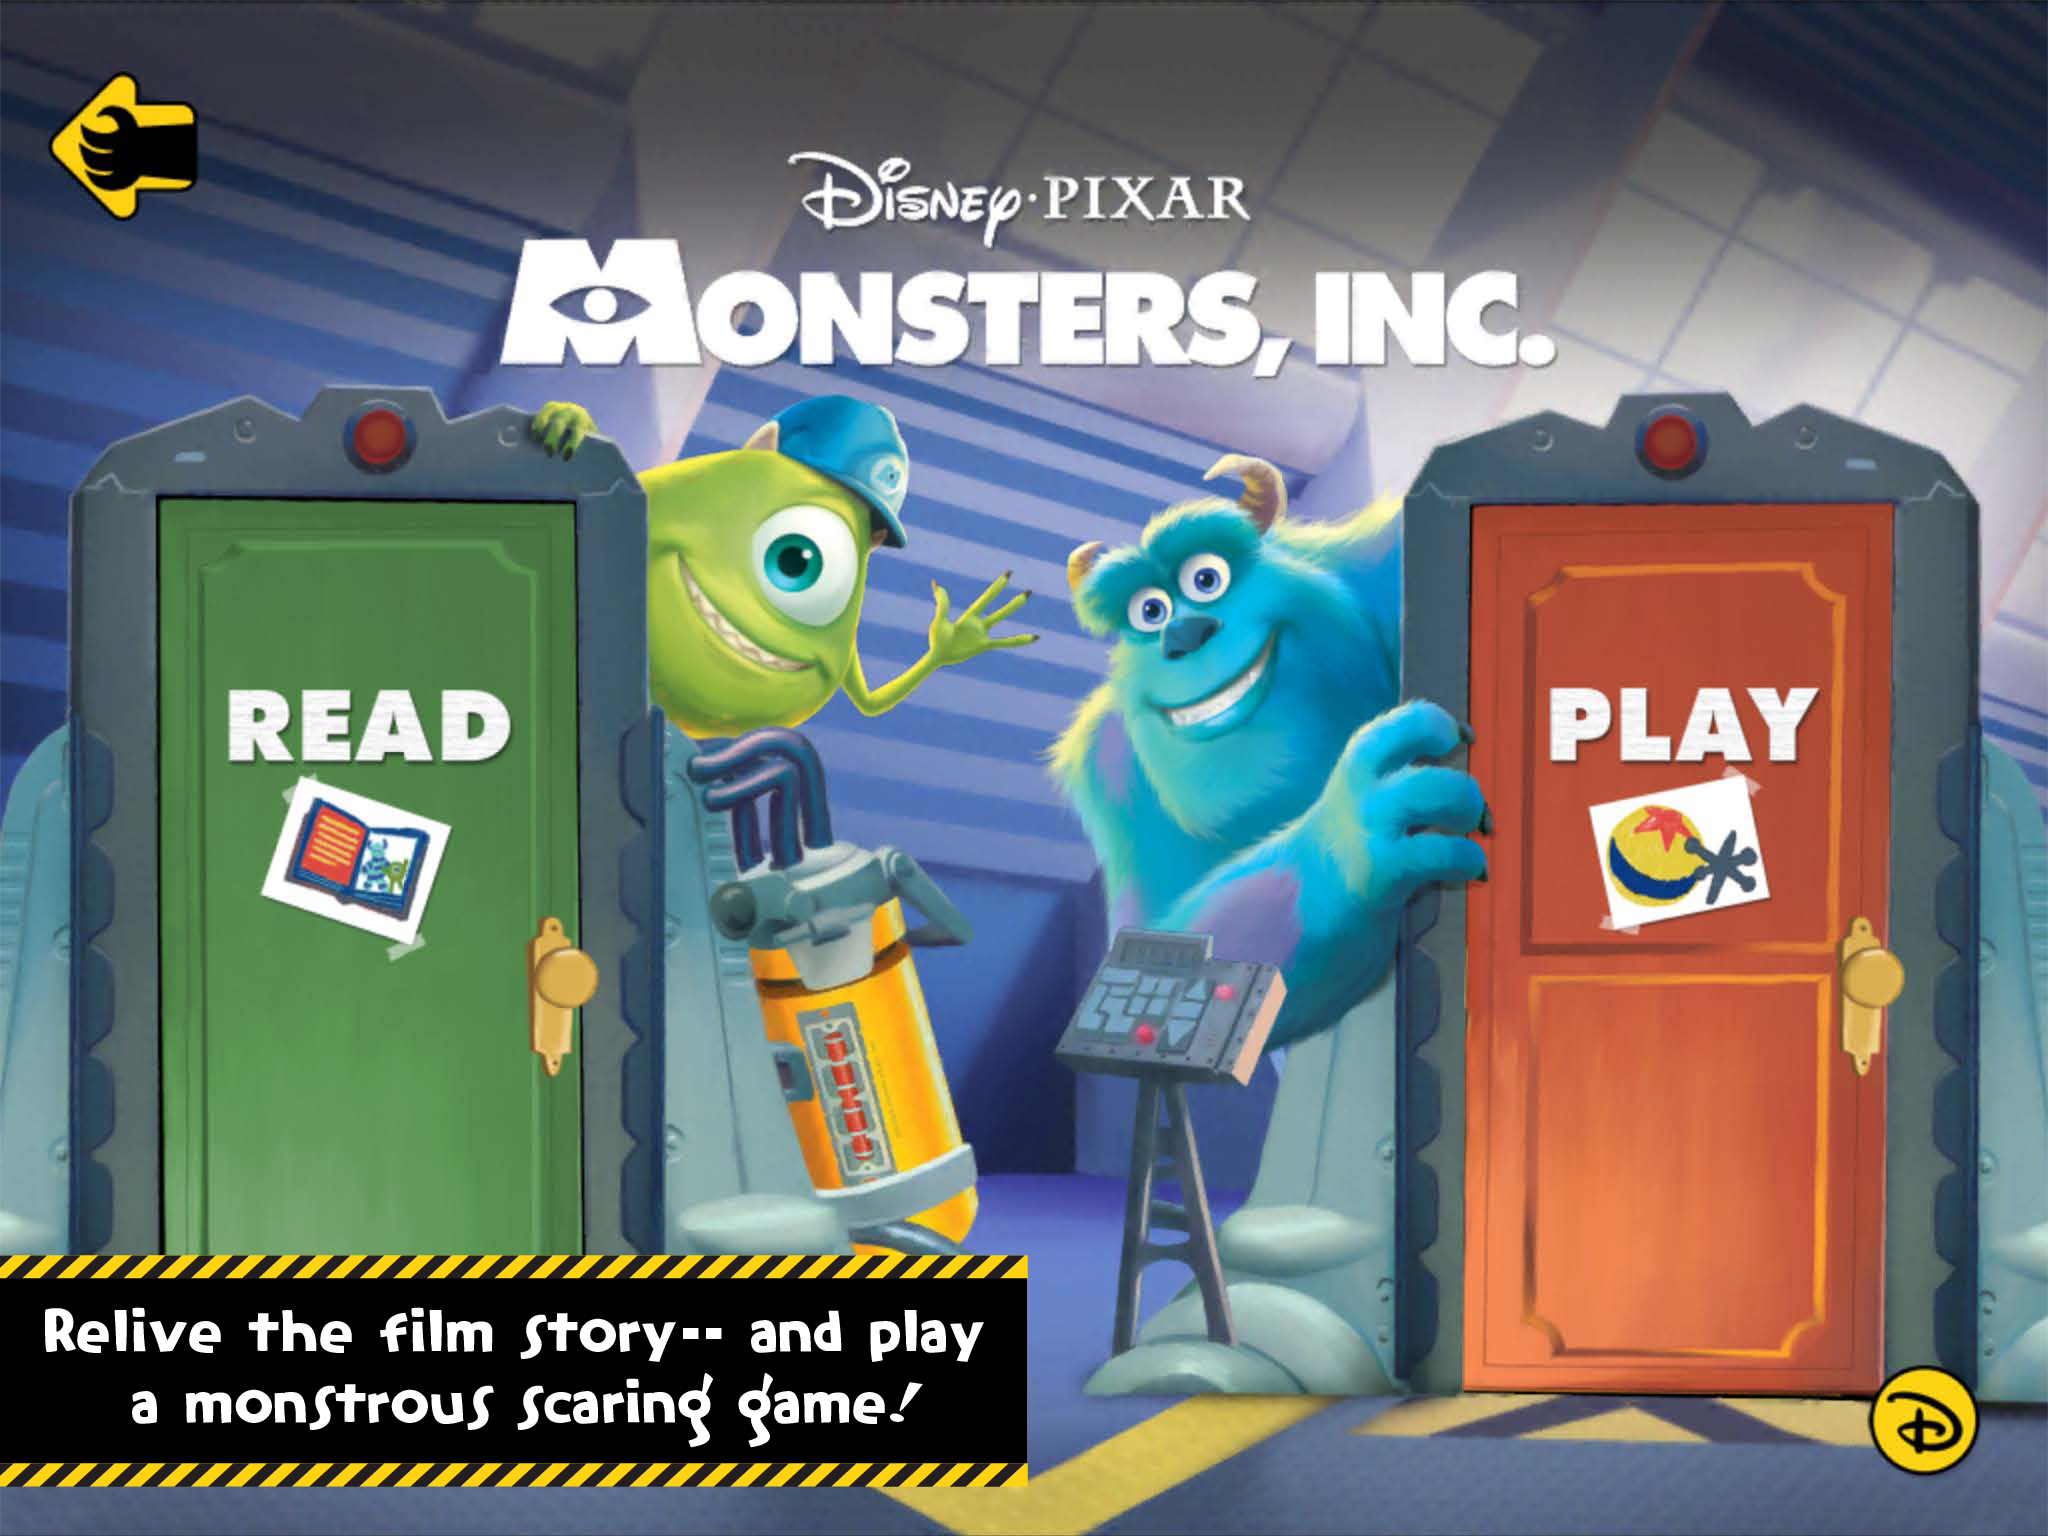 Disney-Pixar's Monster's, Inc., Storybook Review and Giveaway